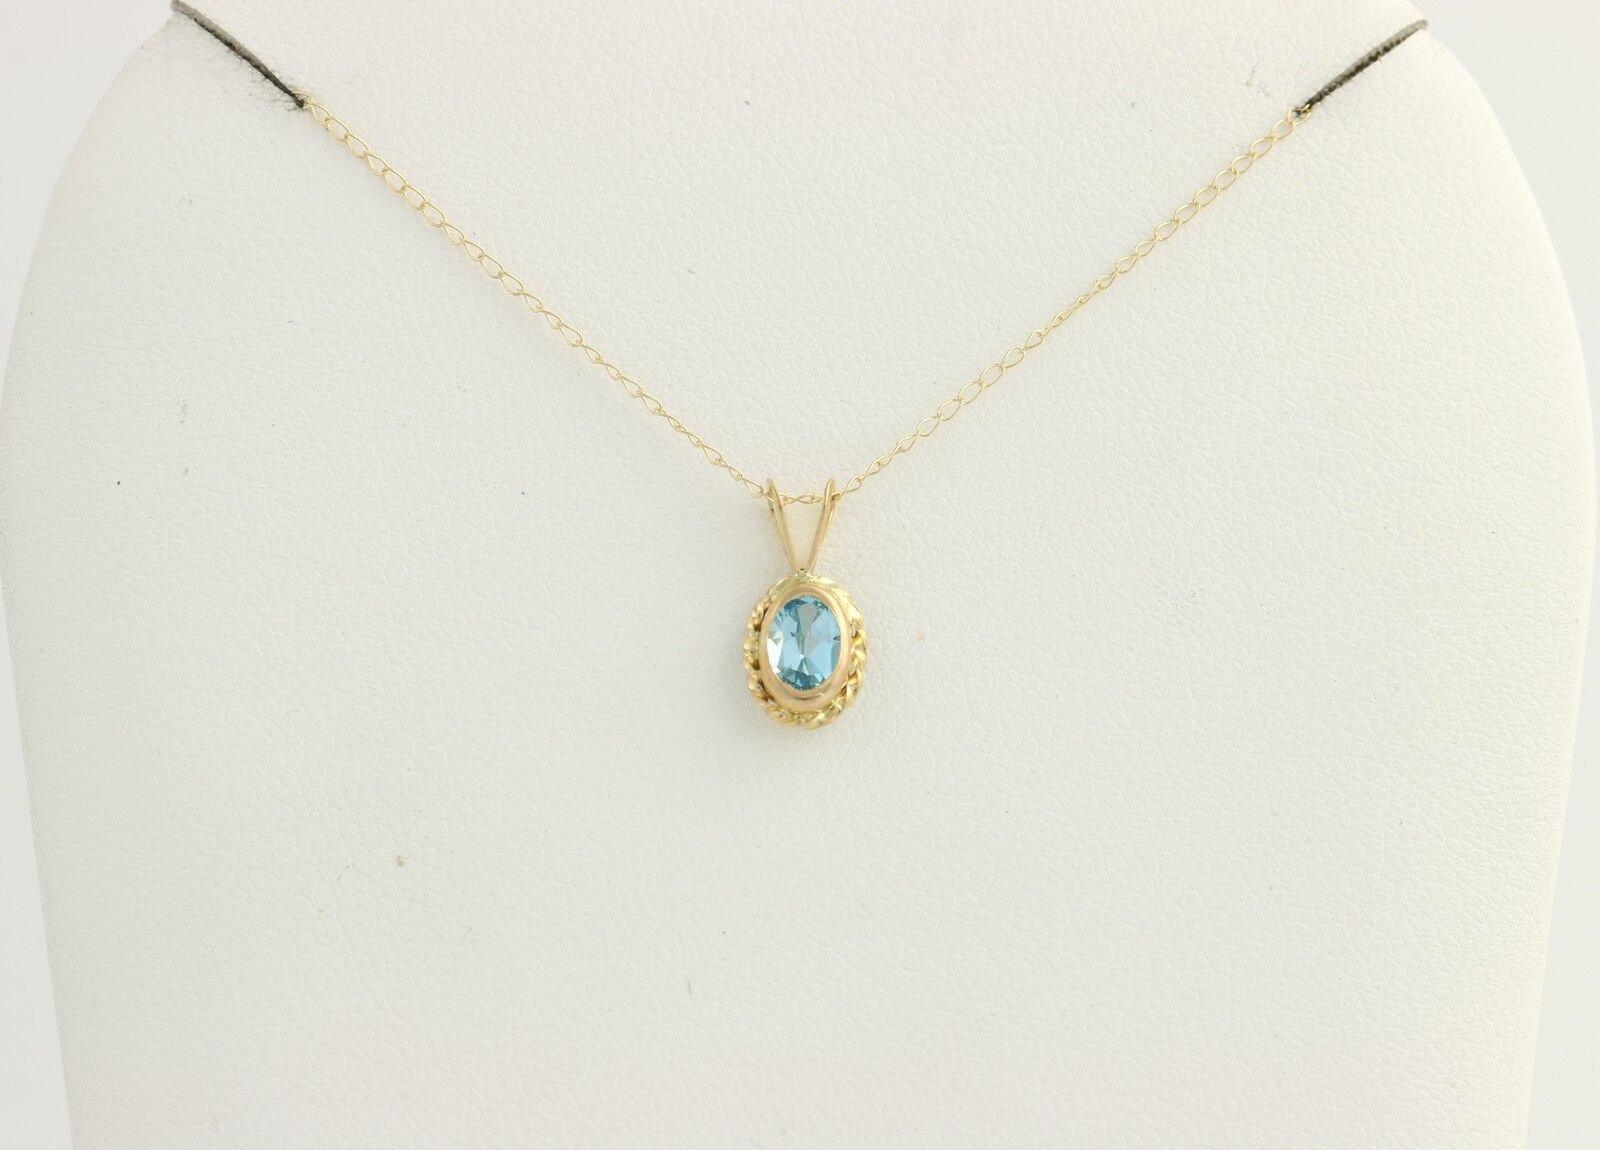 Blue topaz pendant necklace 10k yellow gold oval solitaire 18 picture 1 of 8 aloadofball Image collections